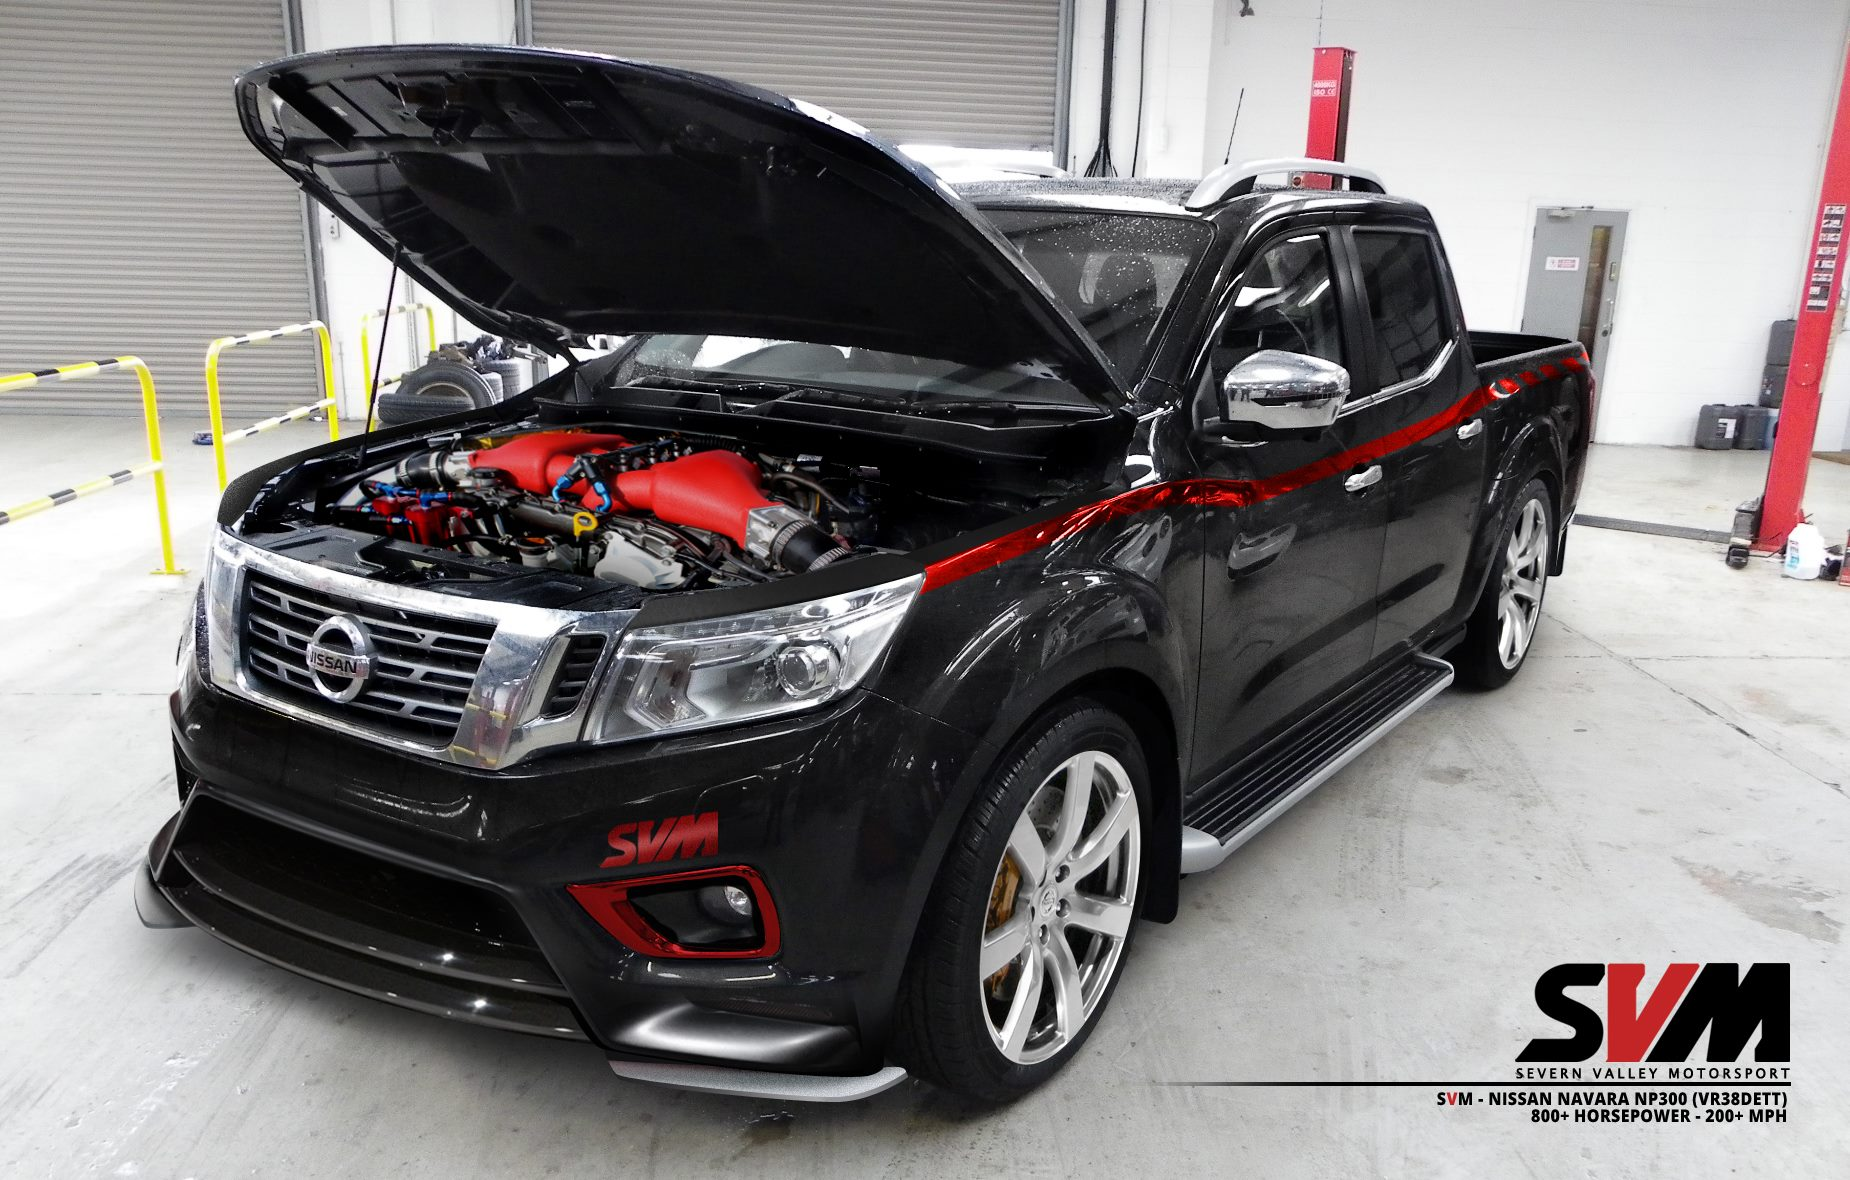 nissan navara np300 gets 800hp gt r engine conversion performancedrive. Black Bedroom Furniture Sets. Home Design Ideas